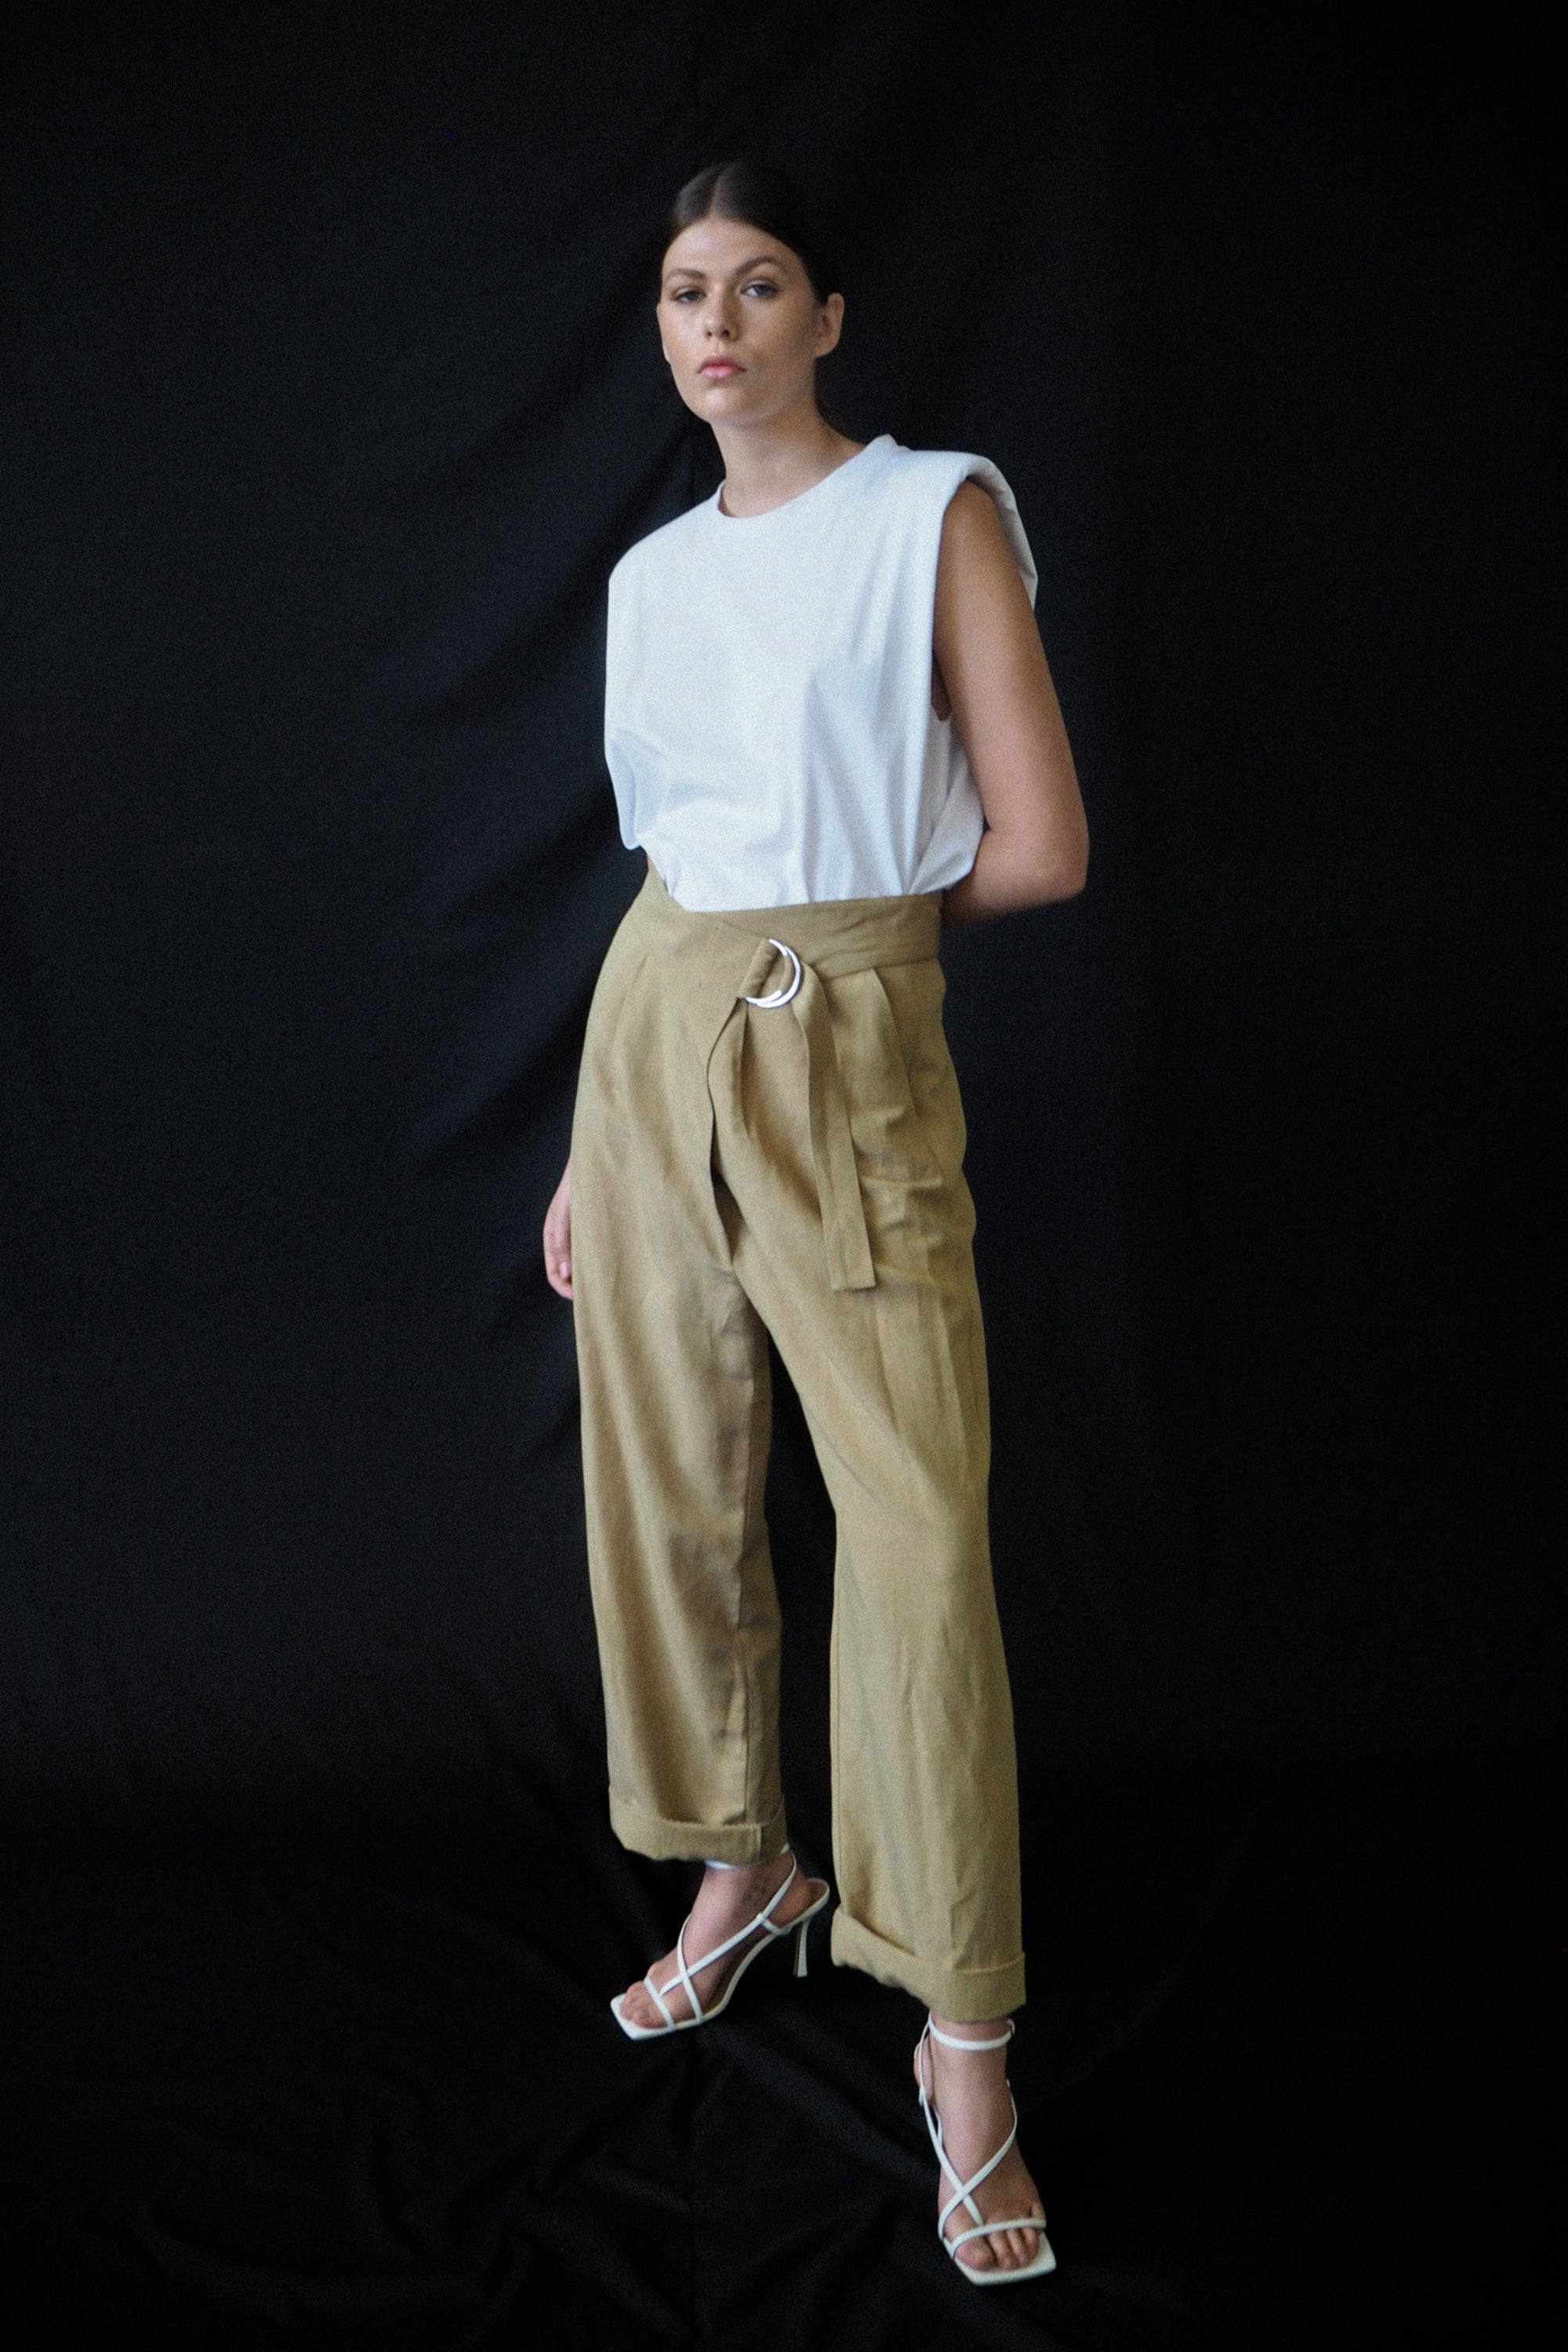 Barball Pant Ricochet SS20 Collection NZ Sustainable Fashion Design